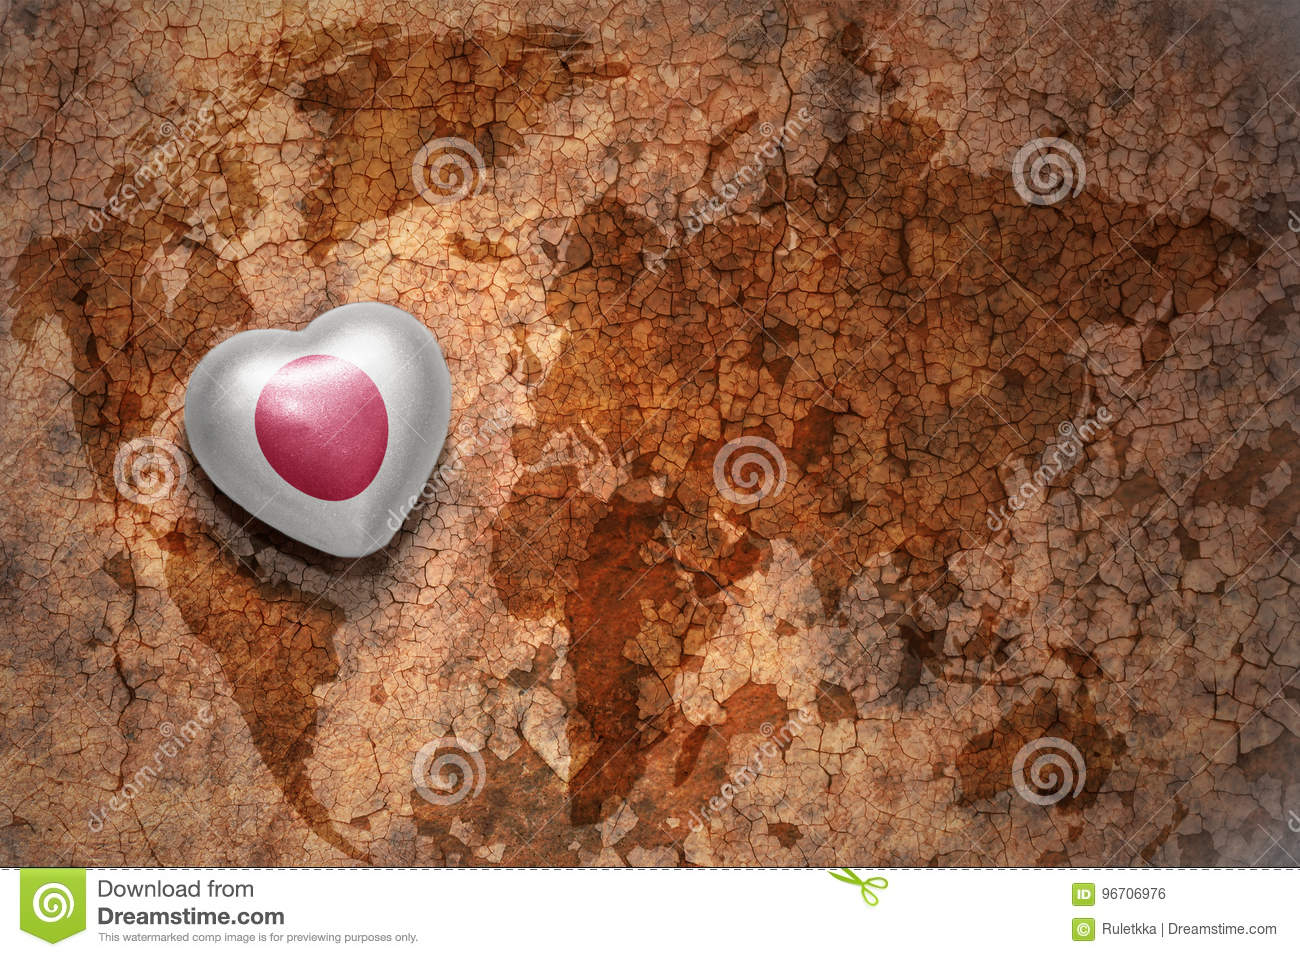 Heart with national flag of japan on a vintage world map crack paper background.